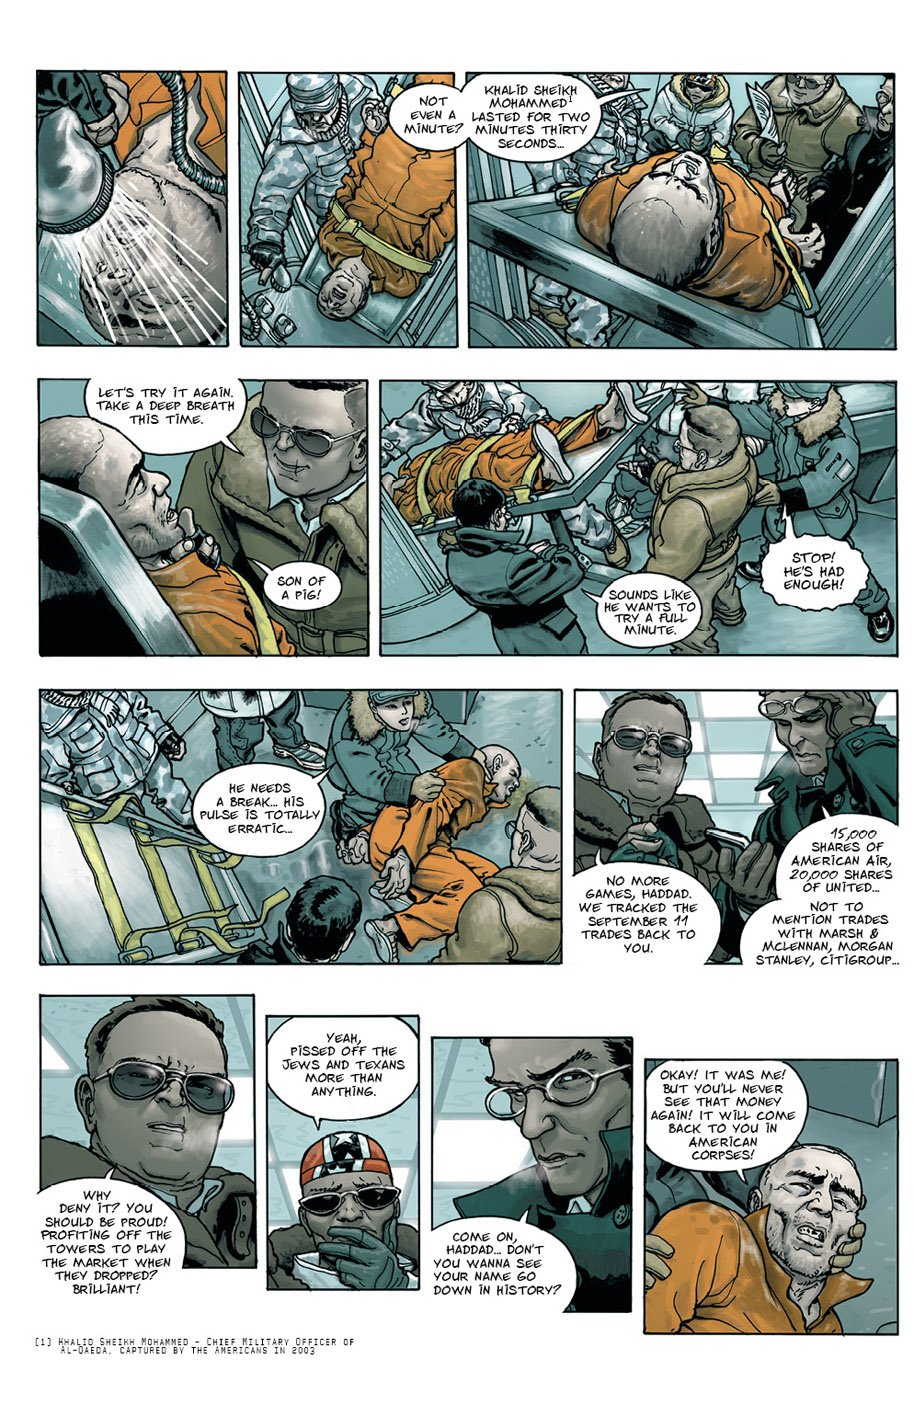 GHOST MONEY #1-preview_p10